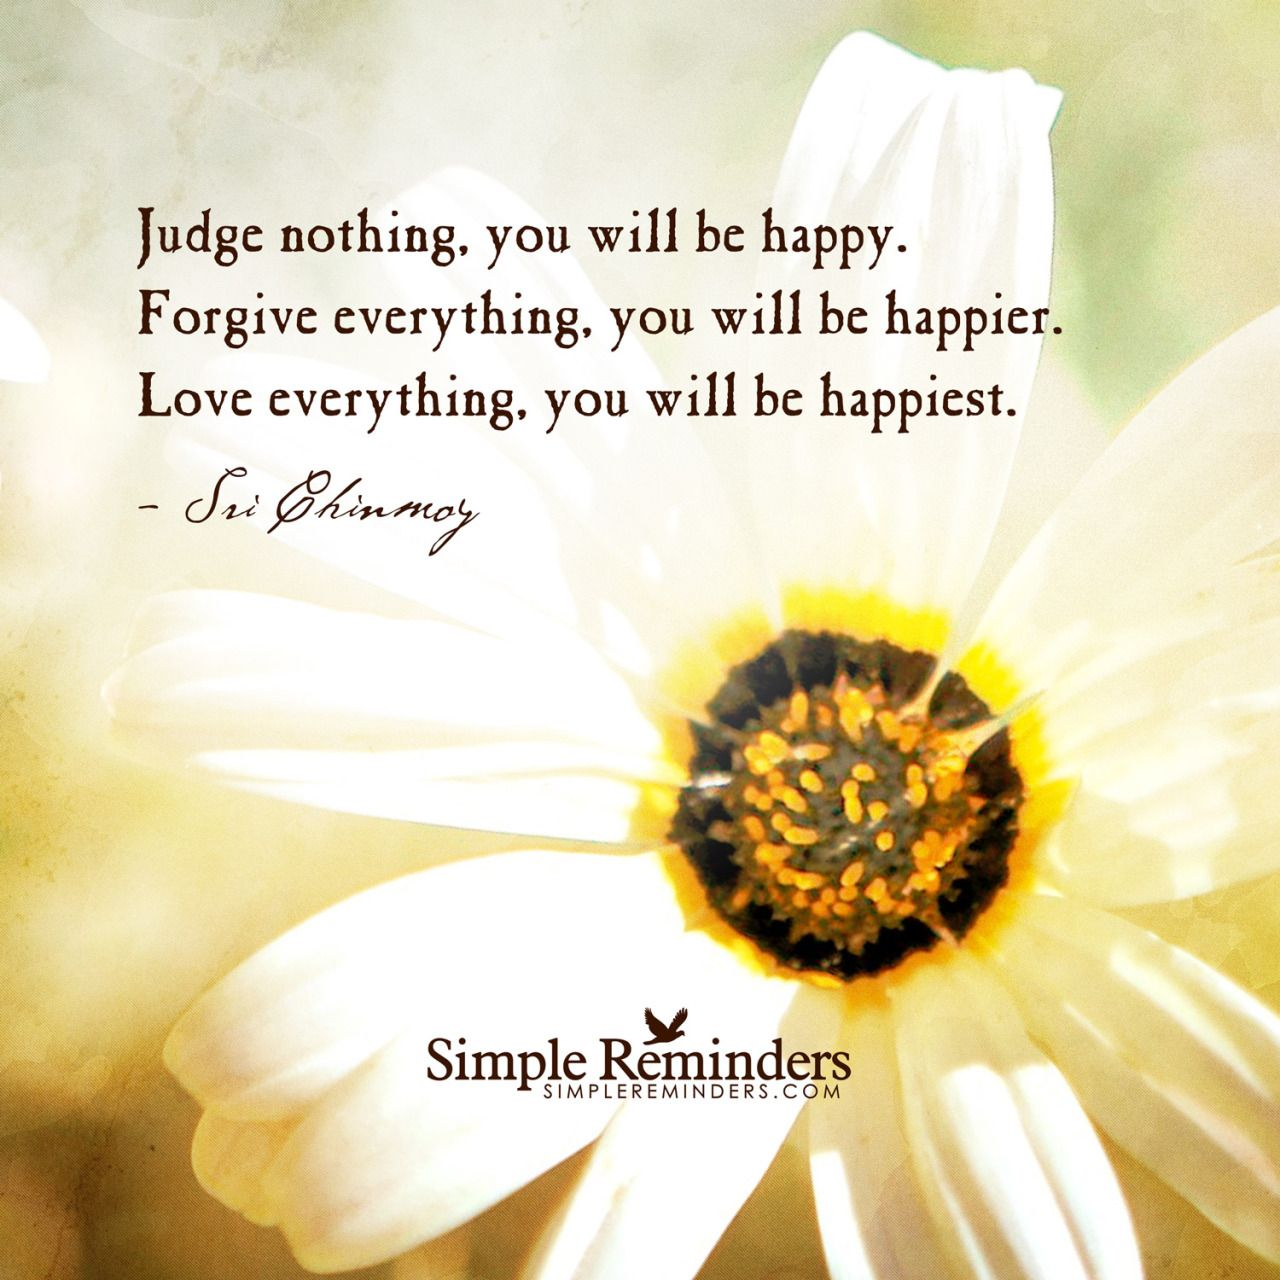 mysimplereminders: Judge nothing you will be happy ...